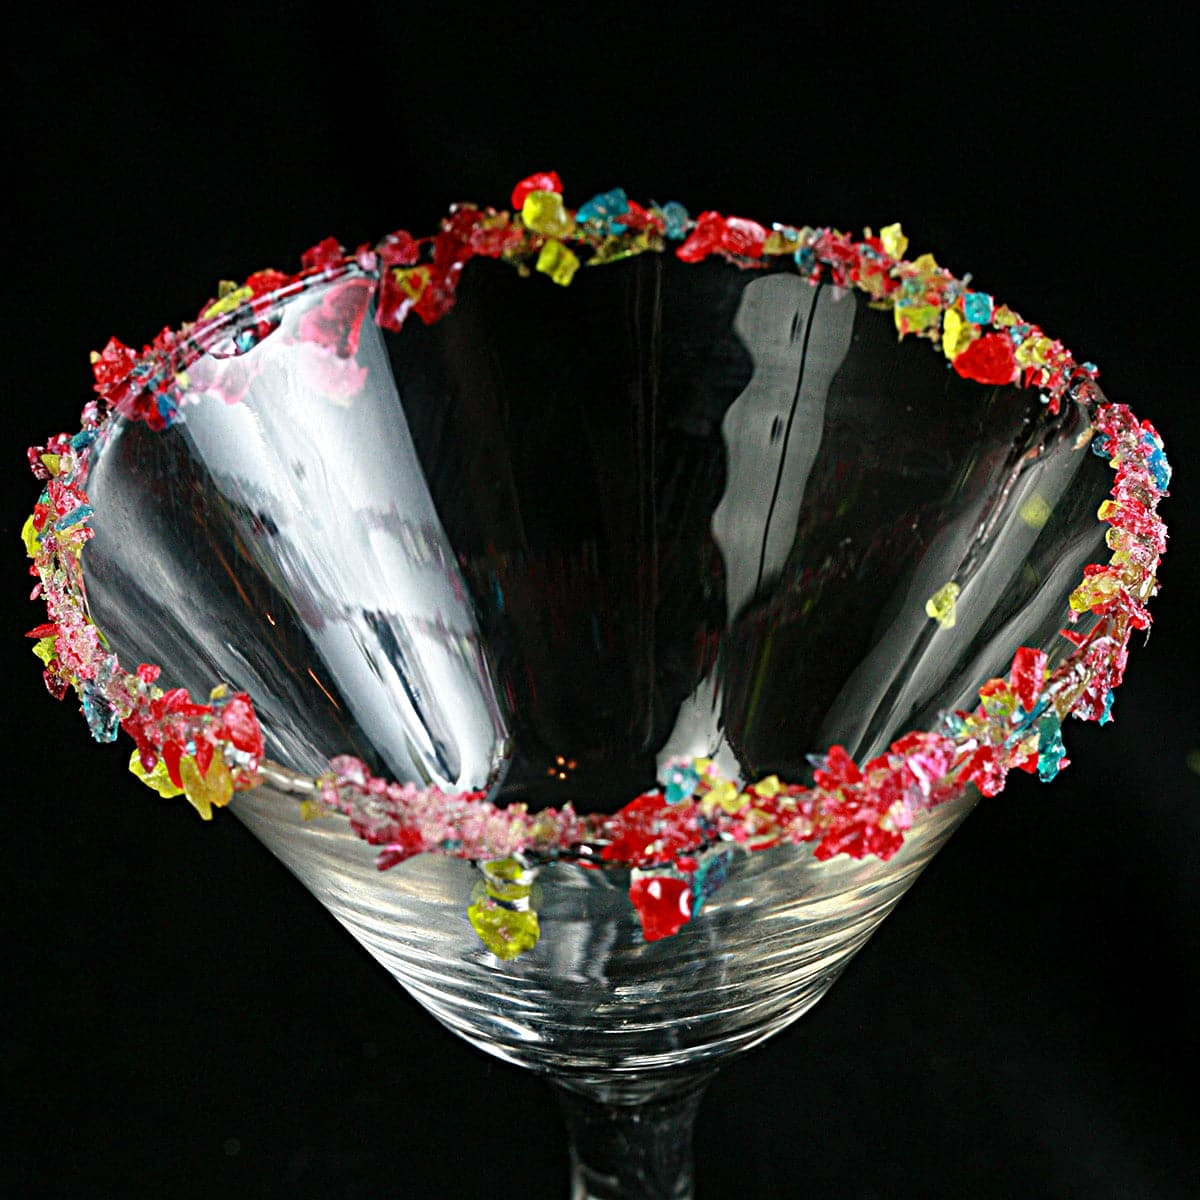 A martini glass with a candied cocktail rim, against a black background.